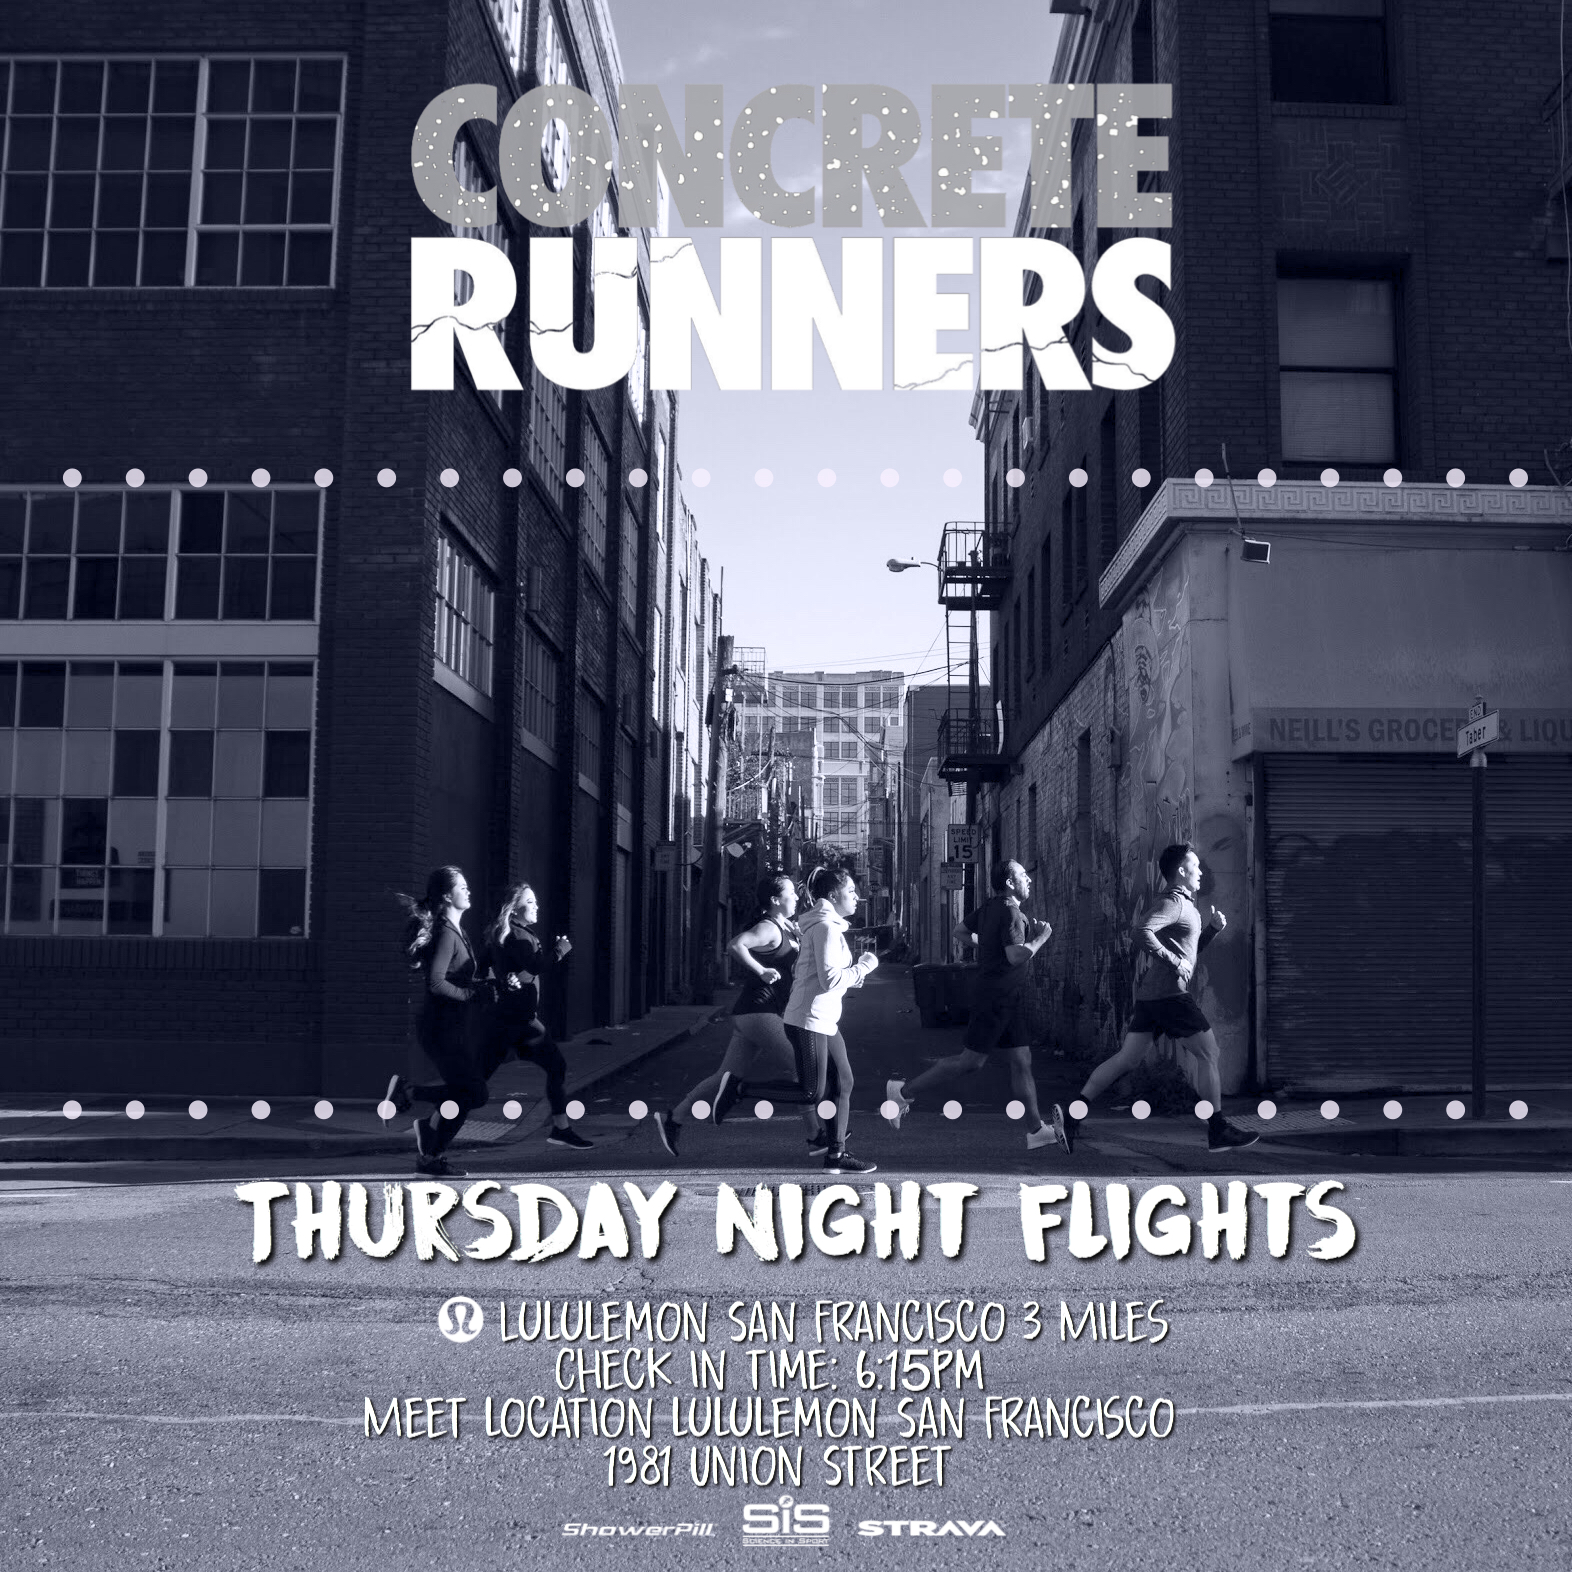 Join Concrete Runners for our anniversary at Thursday Night Flight. We'll be taking off for a 3 mile run with Lululemon San Francisco (Cow Hollow)  📅 Date: Thursday 4/5  📍Meet Location: Lululemon 1981 Union Street San Francisco  🕧 Meeting time: 6:00pm  🛫 Take off: 6:30pm  👩🏻‍✈️Pilot(s): Arlynn  👟Distance: 3 miles  👜 Bag Storage: YES   Register  for the run through Eventbrite and check in at the event with one of the Pilots to be entered into our Loyalty Miles Program with On Running. For each Track Tuesday and Thursday Night Flight that you successfully check in to during the the 2018 season, you will be entered into a raffle that could win you free gear, or even a trip as our grand prize!  *️⃣ To join our run club on Strava, visit  www.concreterunners.com/strava .